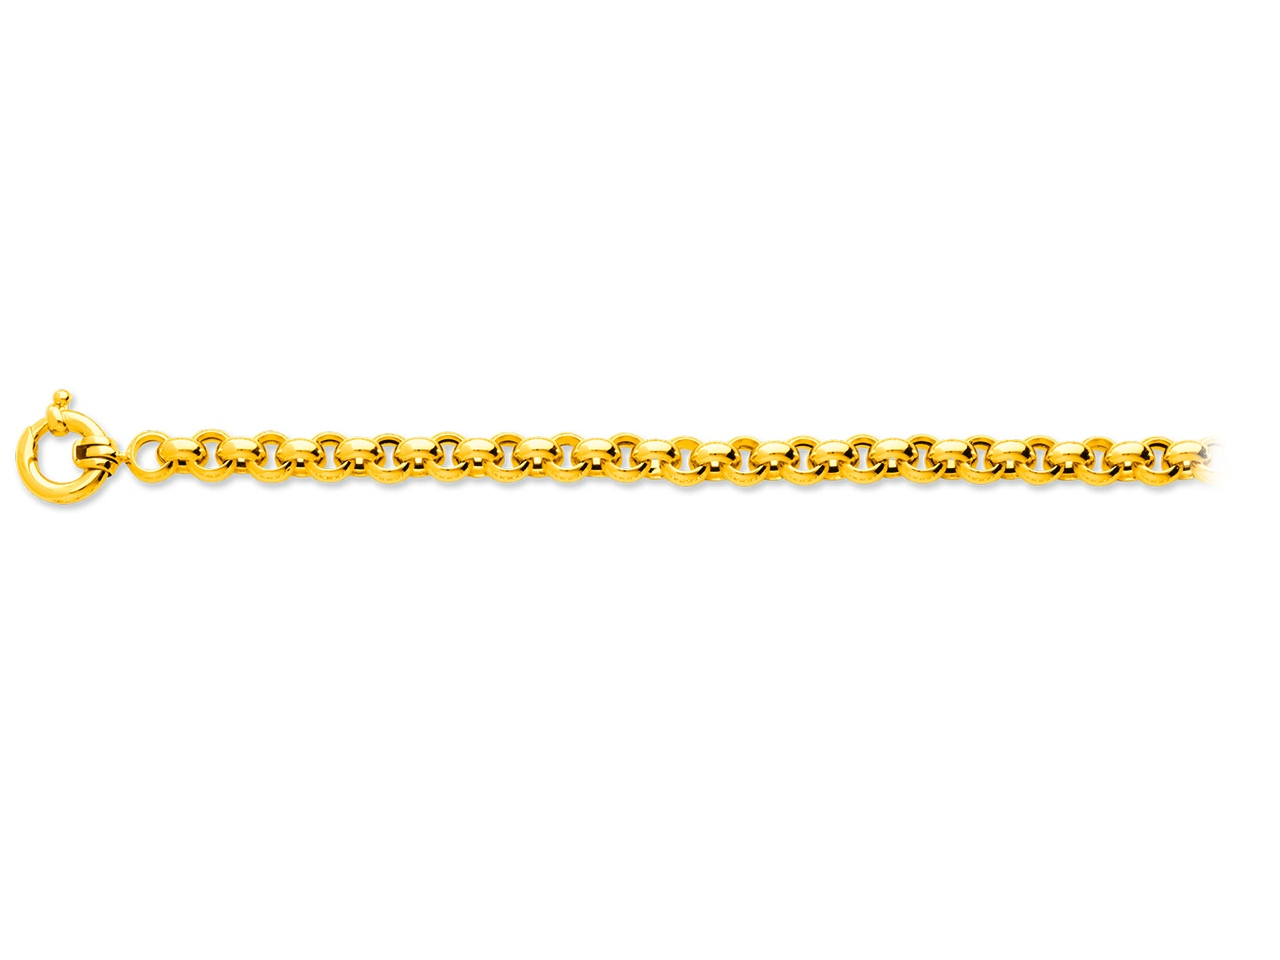 Collier maille jaseron, Or jaune 18k, 7,3 mm, 45 cm